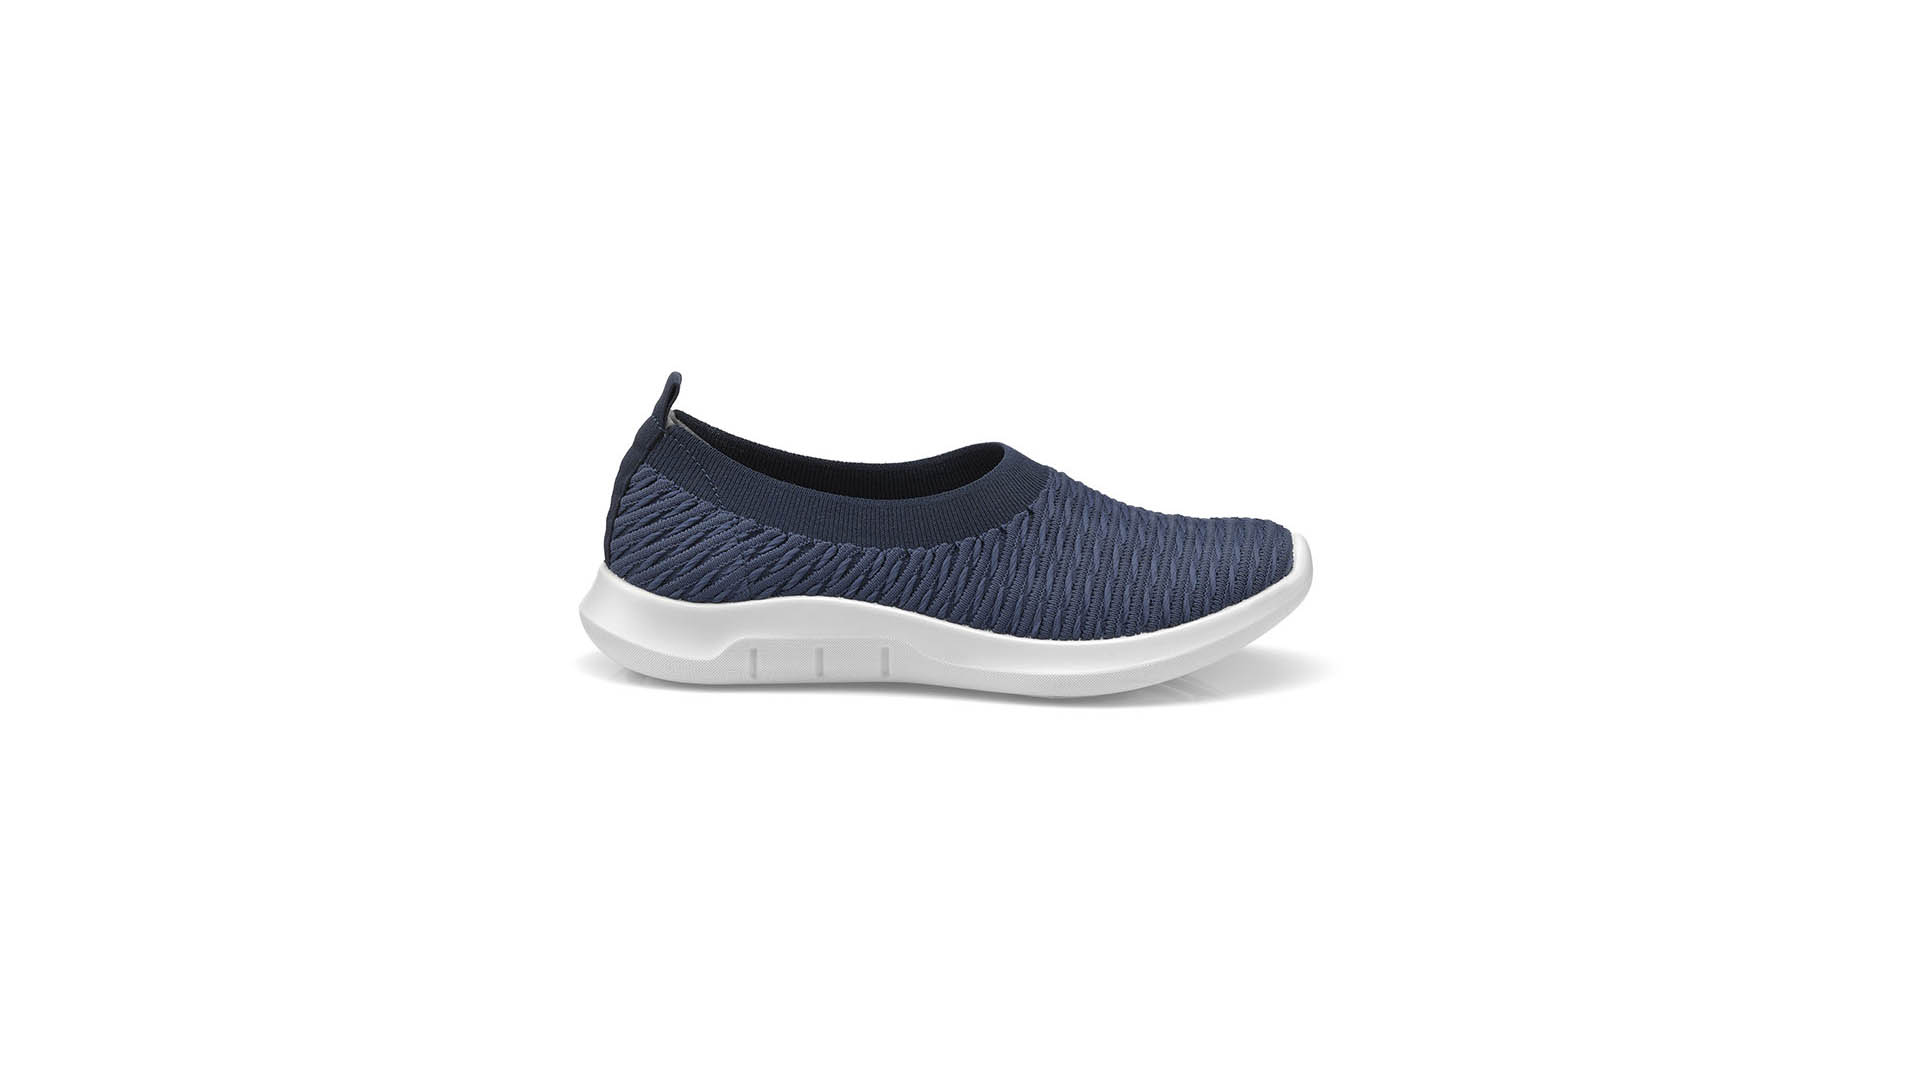 Swift Shoes From Hotter Shoes is a great option for your new shoes